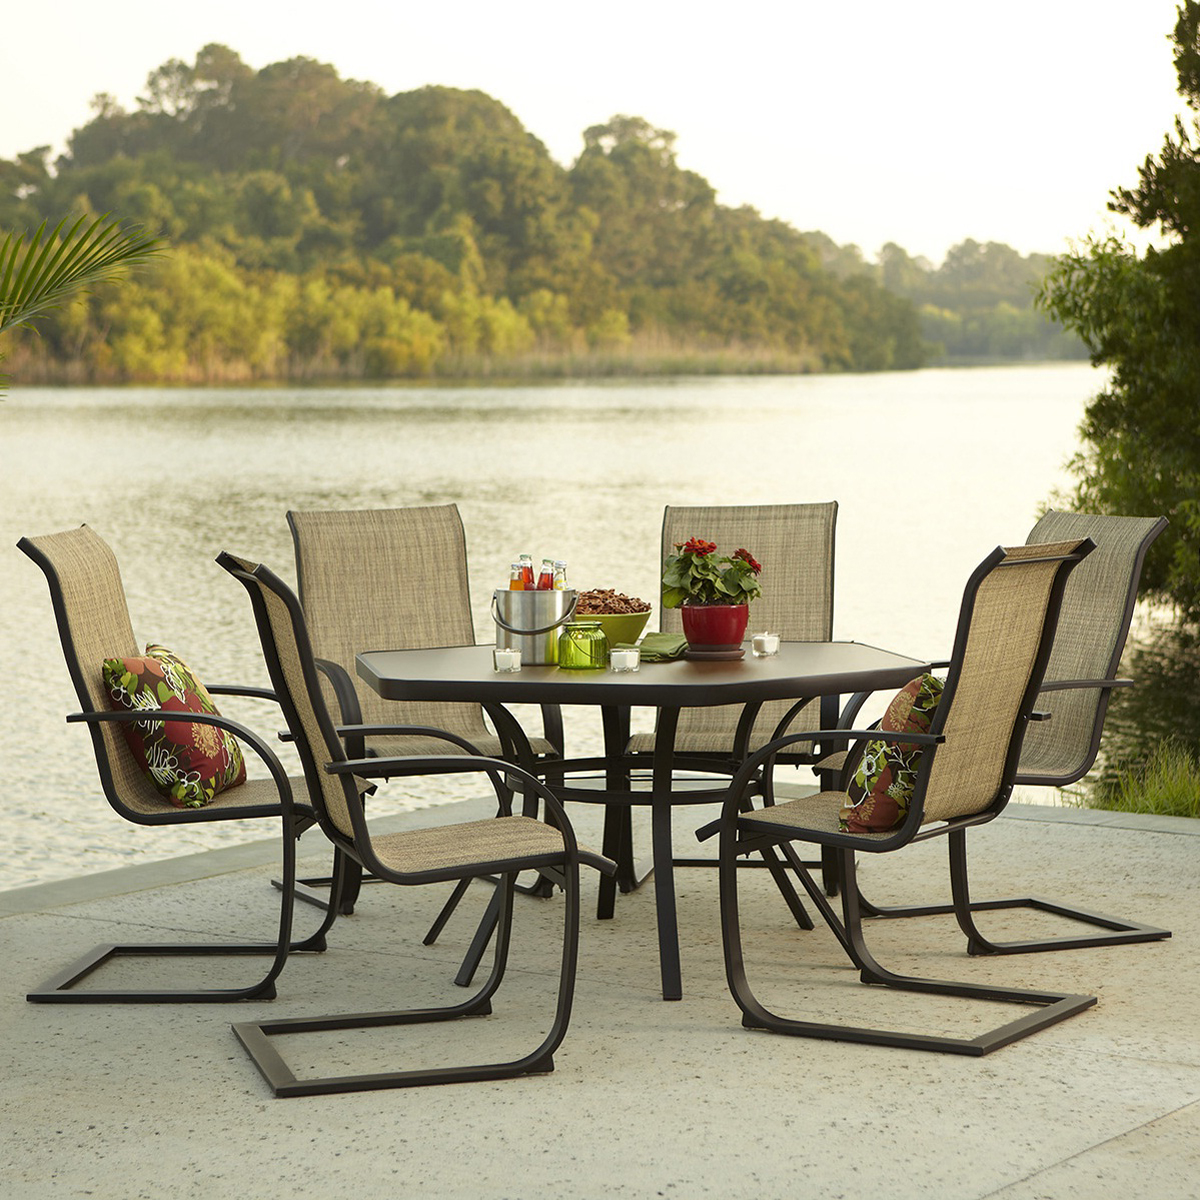 Cheap Patio Furniture Sets | Sears Patio Furniture | Sears Patio Furniture  Clearance Sale